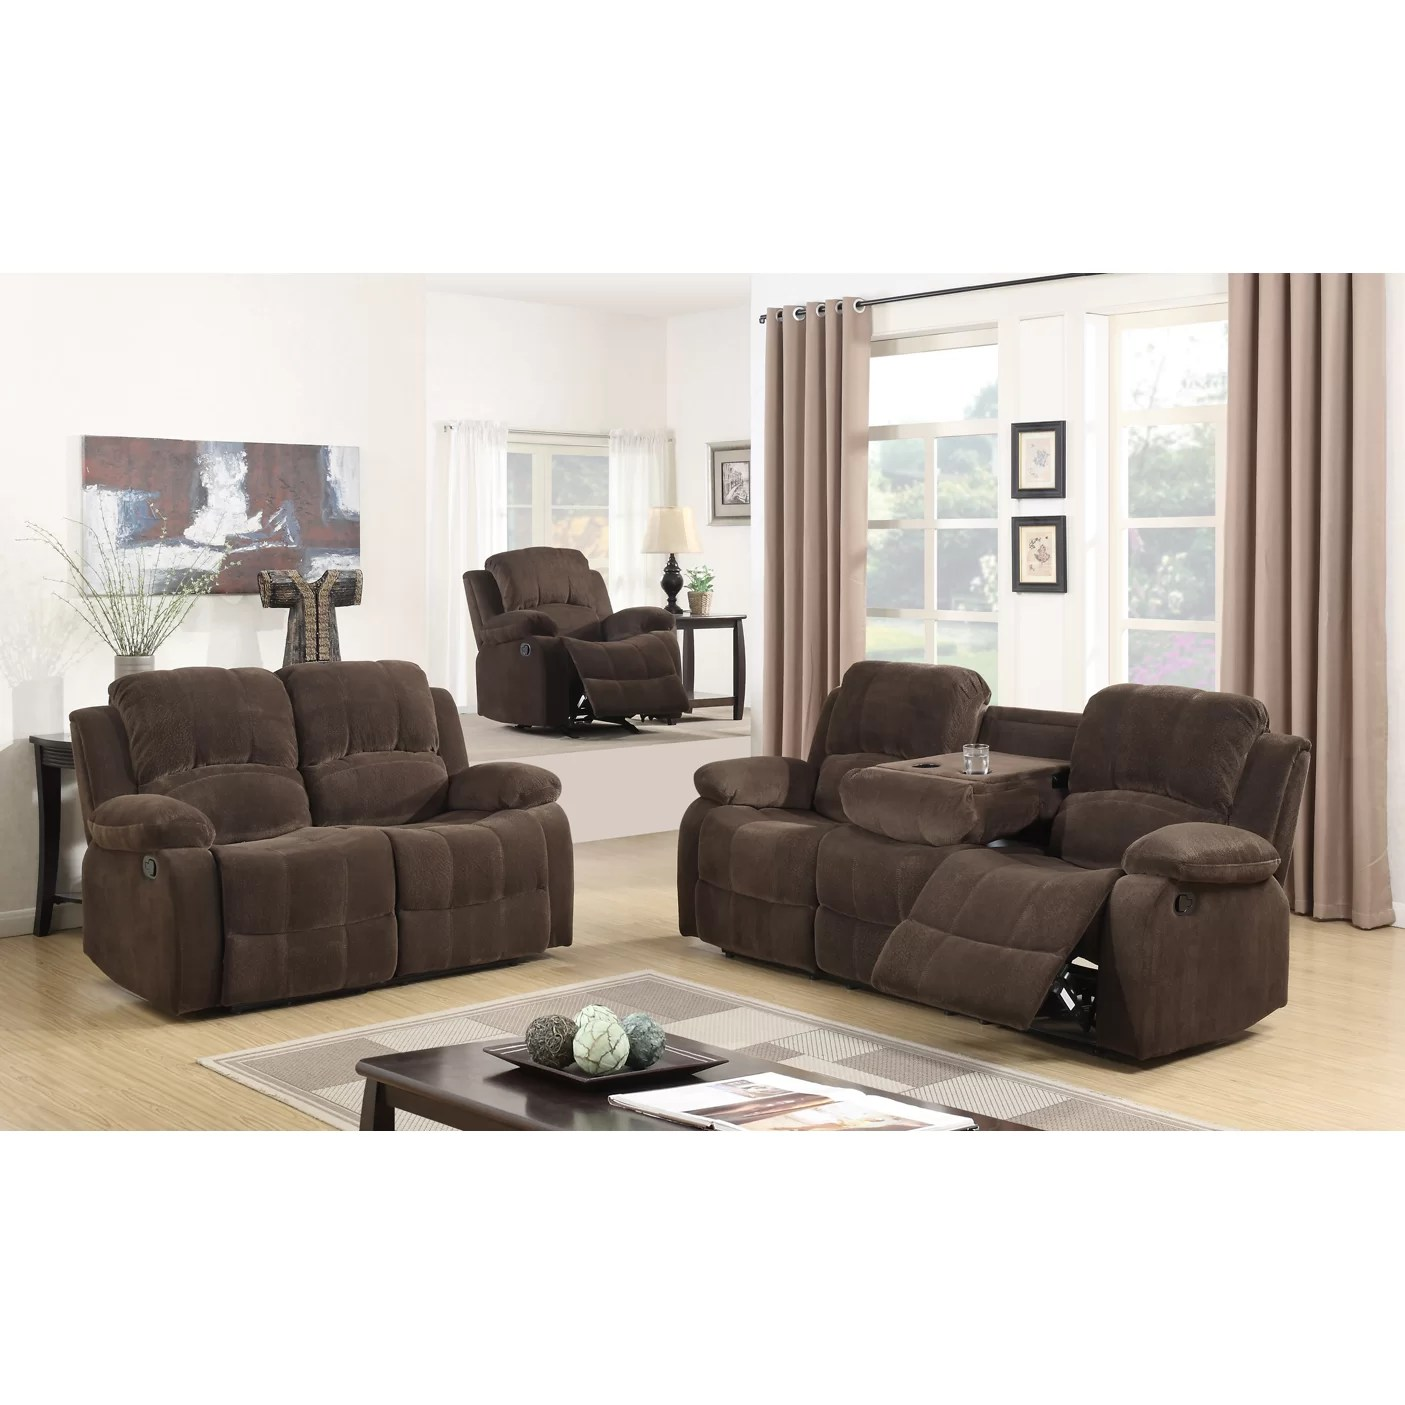 Best Quality Furniture Fabric 3 Piece Recliner Living Room